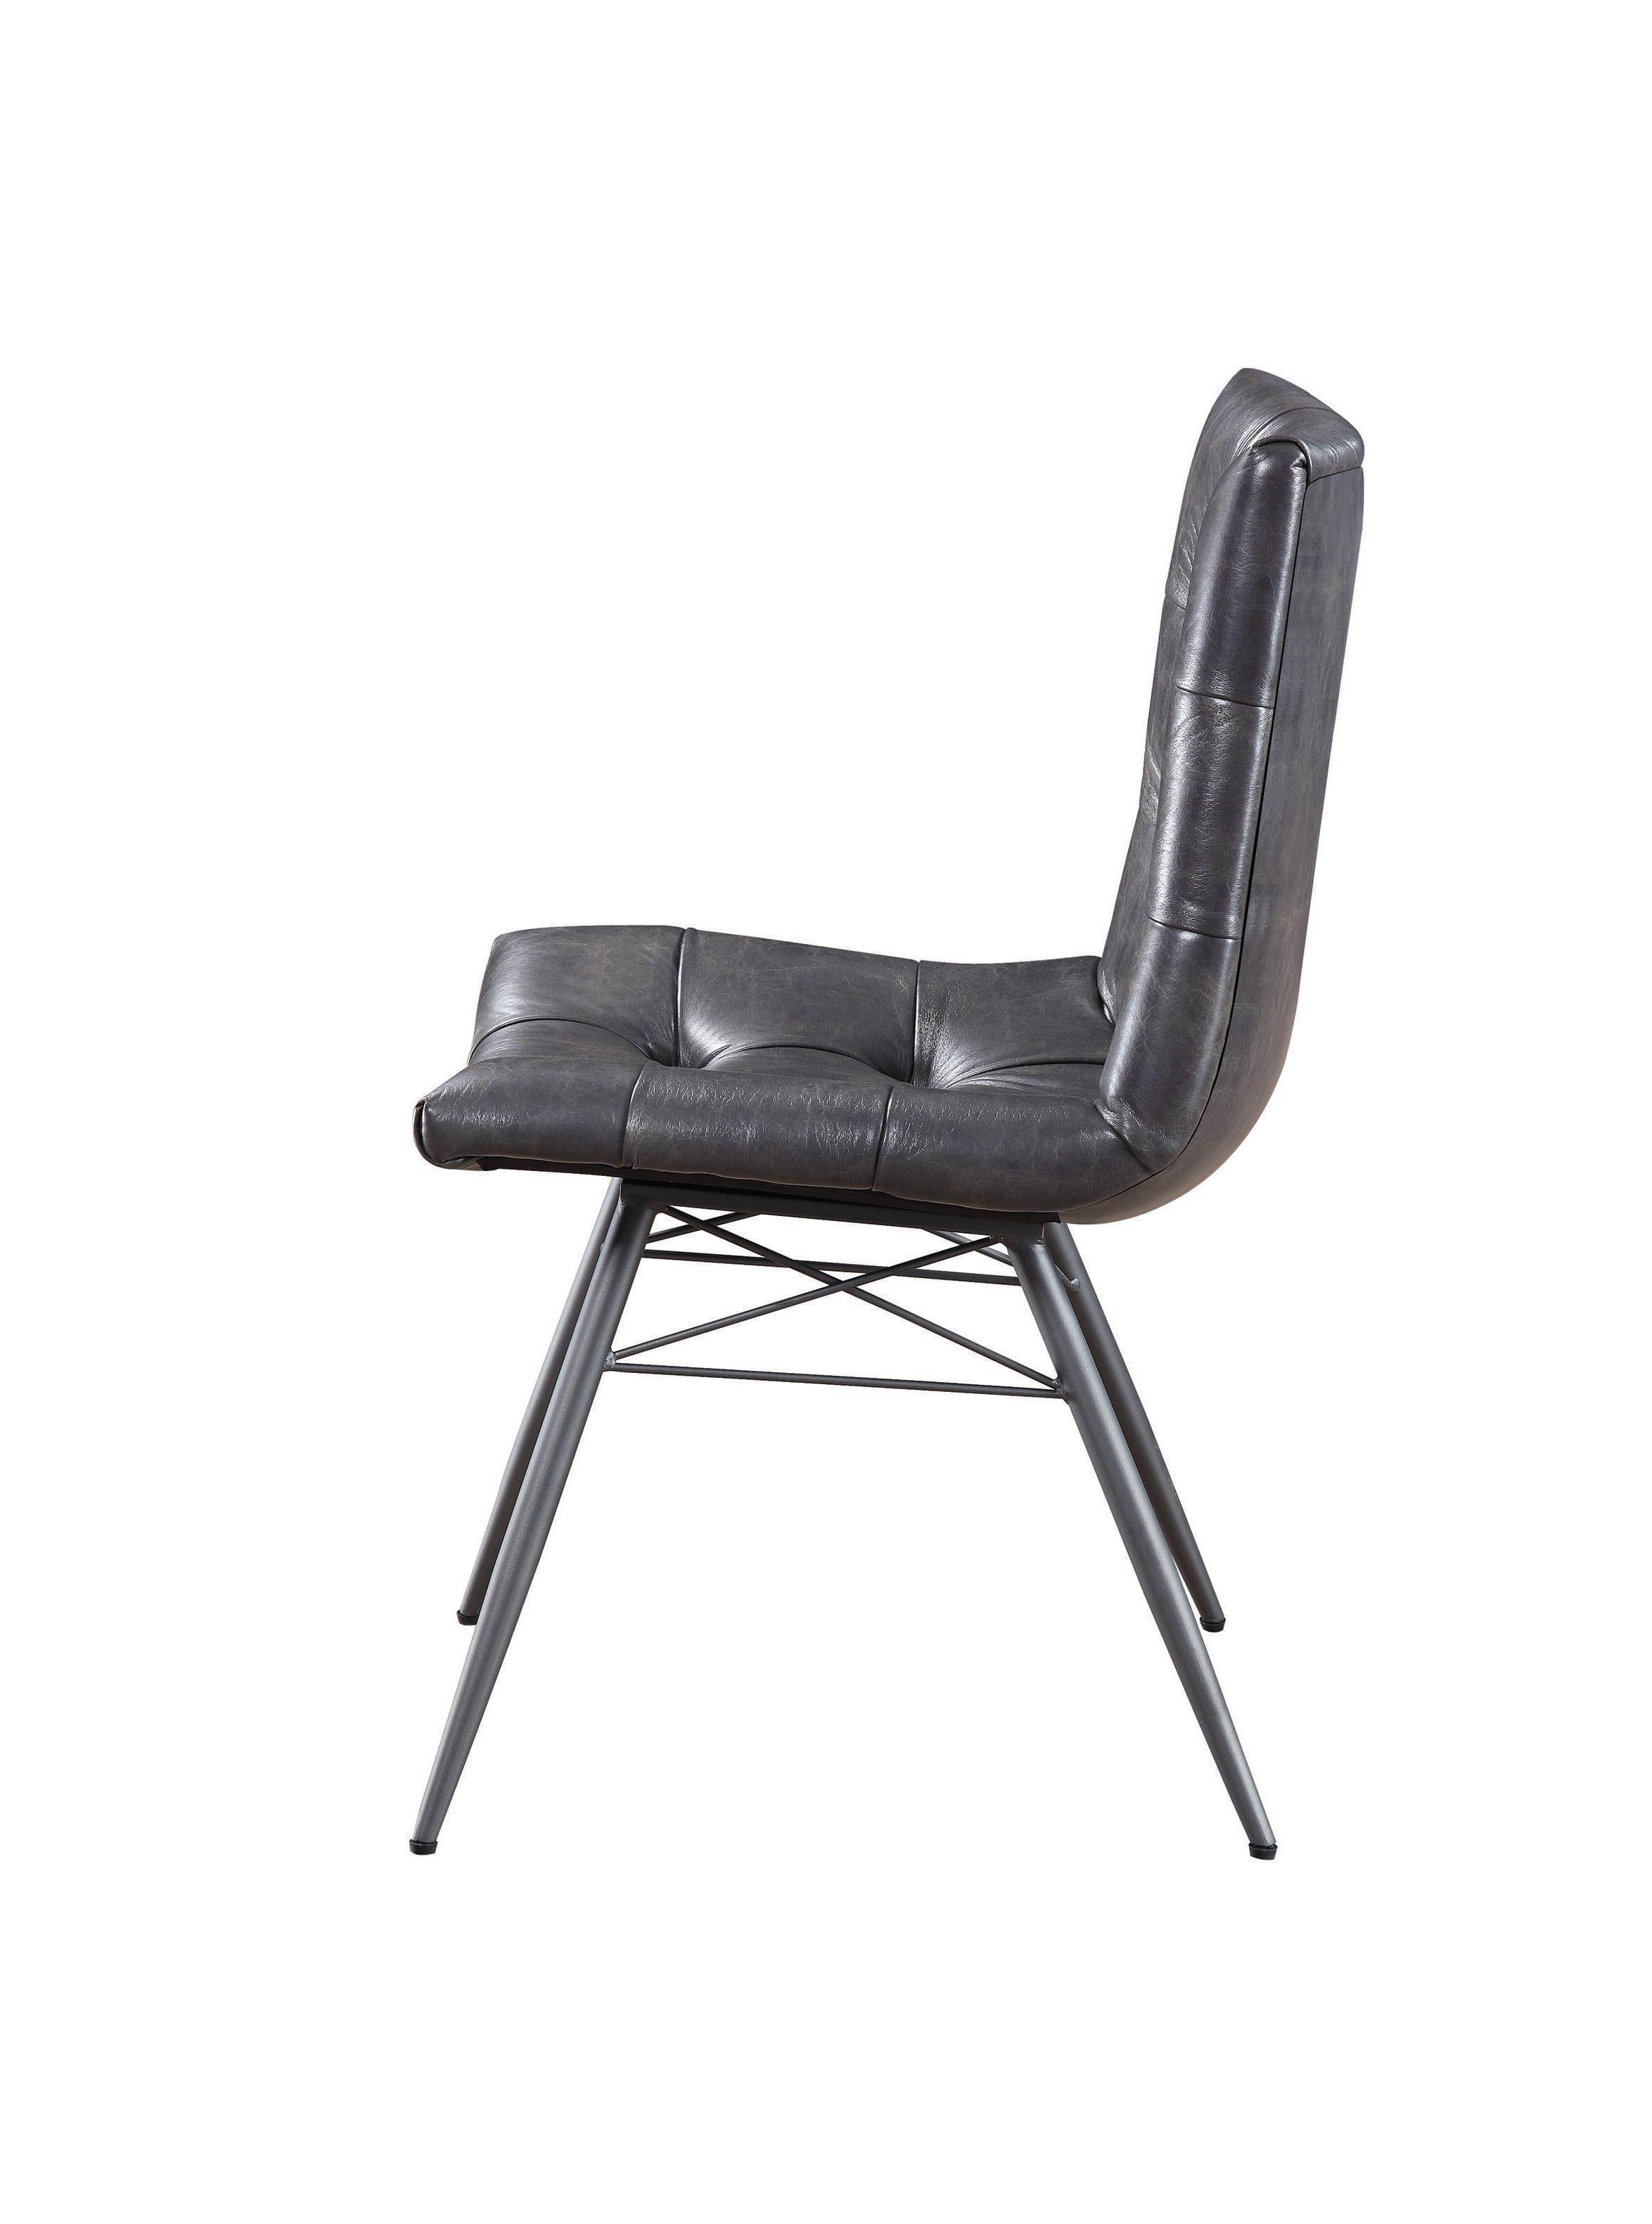 Terrific Modern Gray Faux Leather Upholstery Dining Chair Set 4 Pcs Gmtry Best Dining Table And Chair Ideas Images Gmtryco